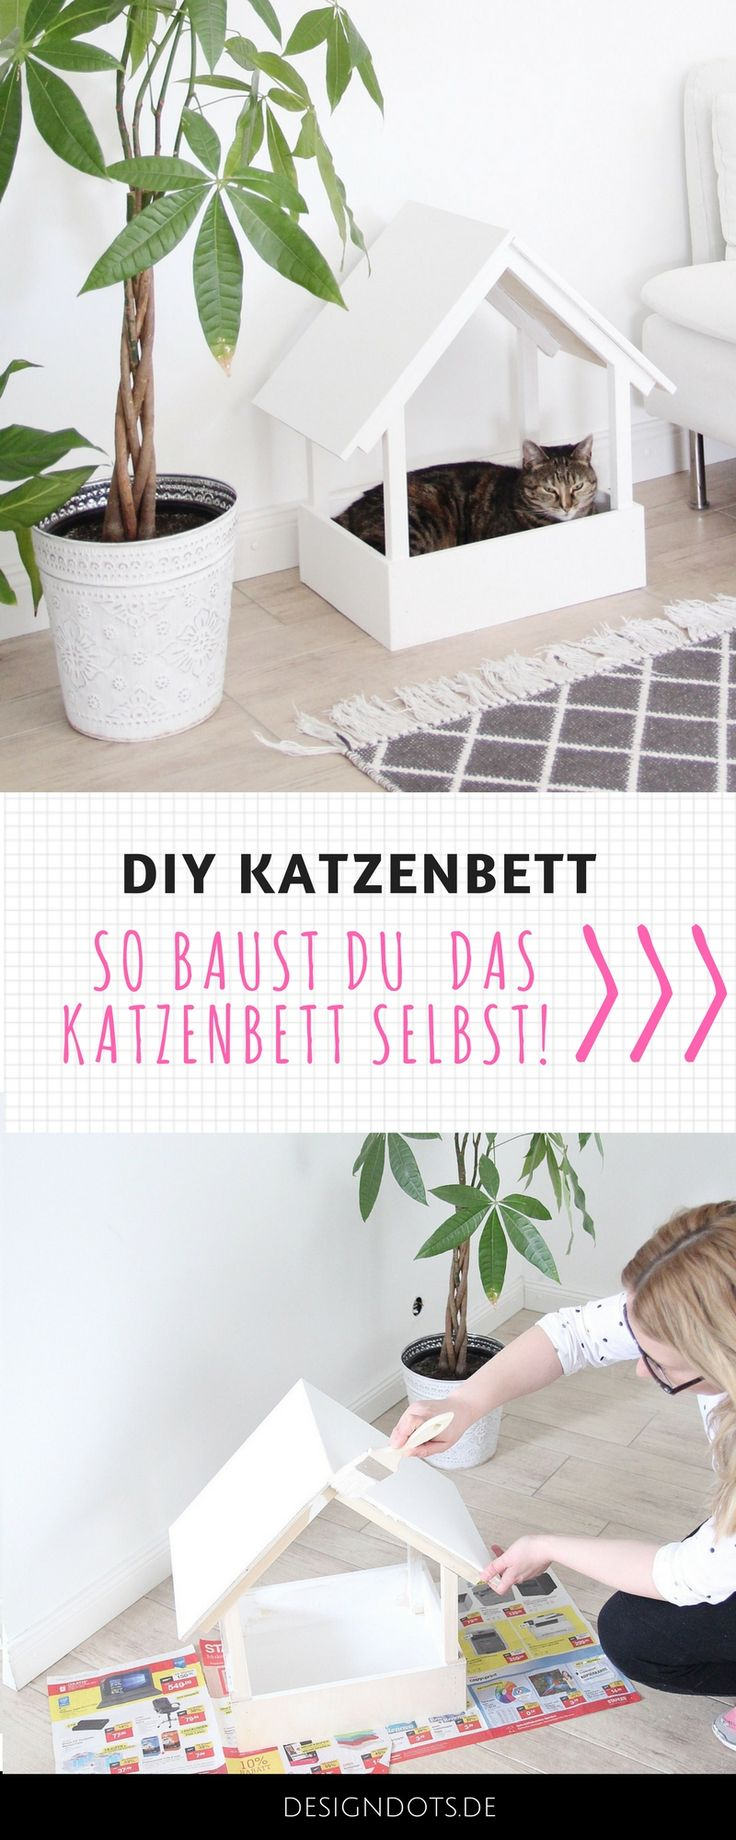 die 25 besten ideen zu kratzbaum selber machen auf pinterest kratzbaum katzenzubeh r und diy. Black Bedroom Furniture Sets. Home Design Ideas